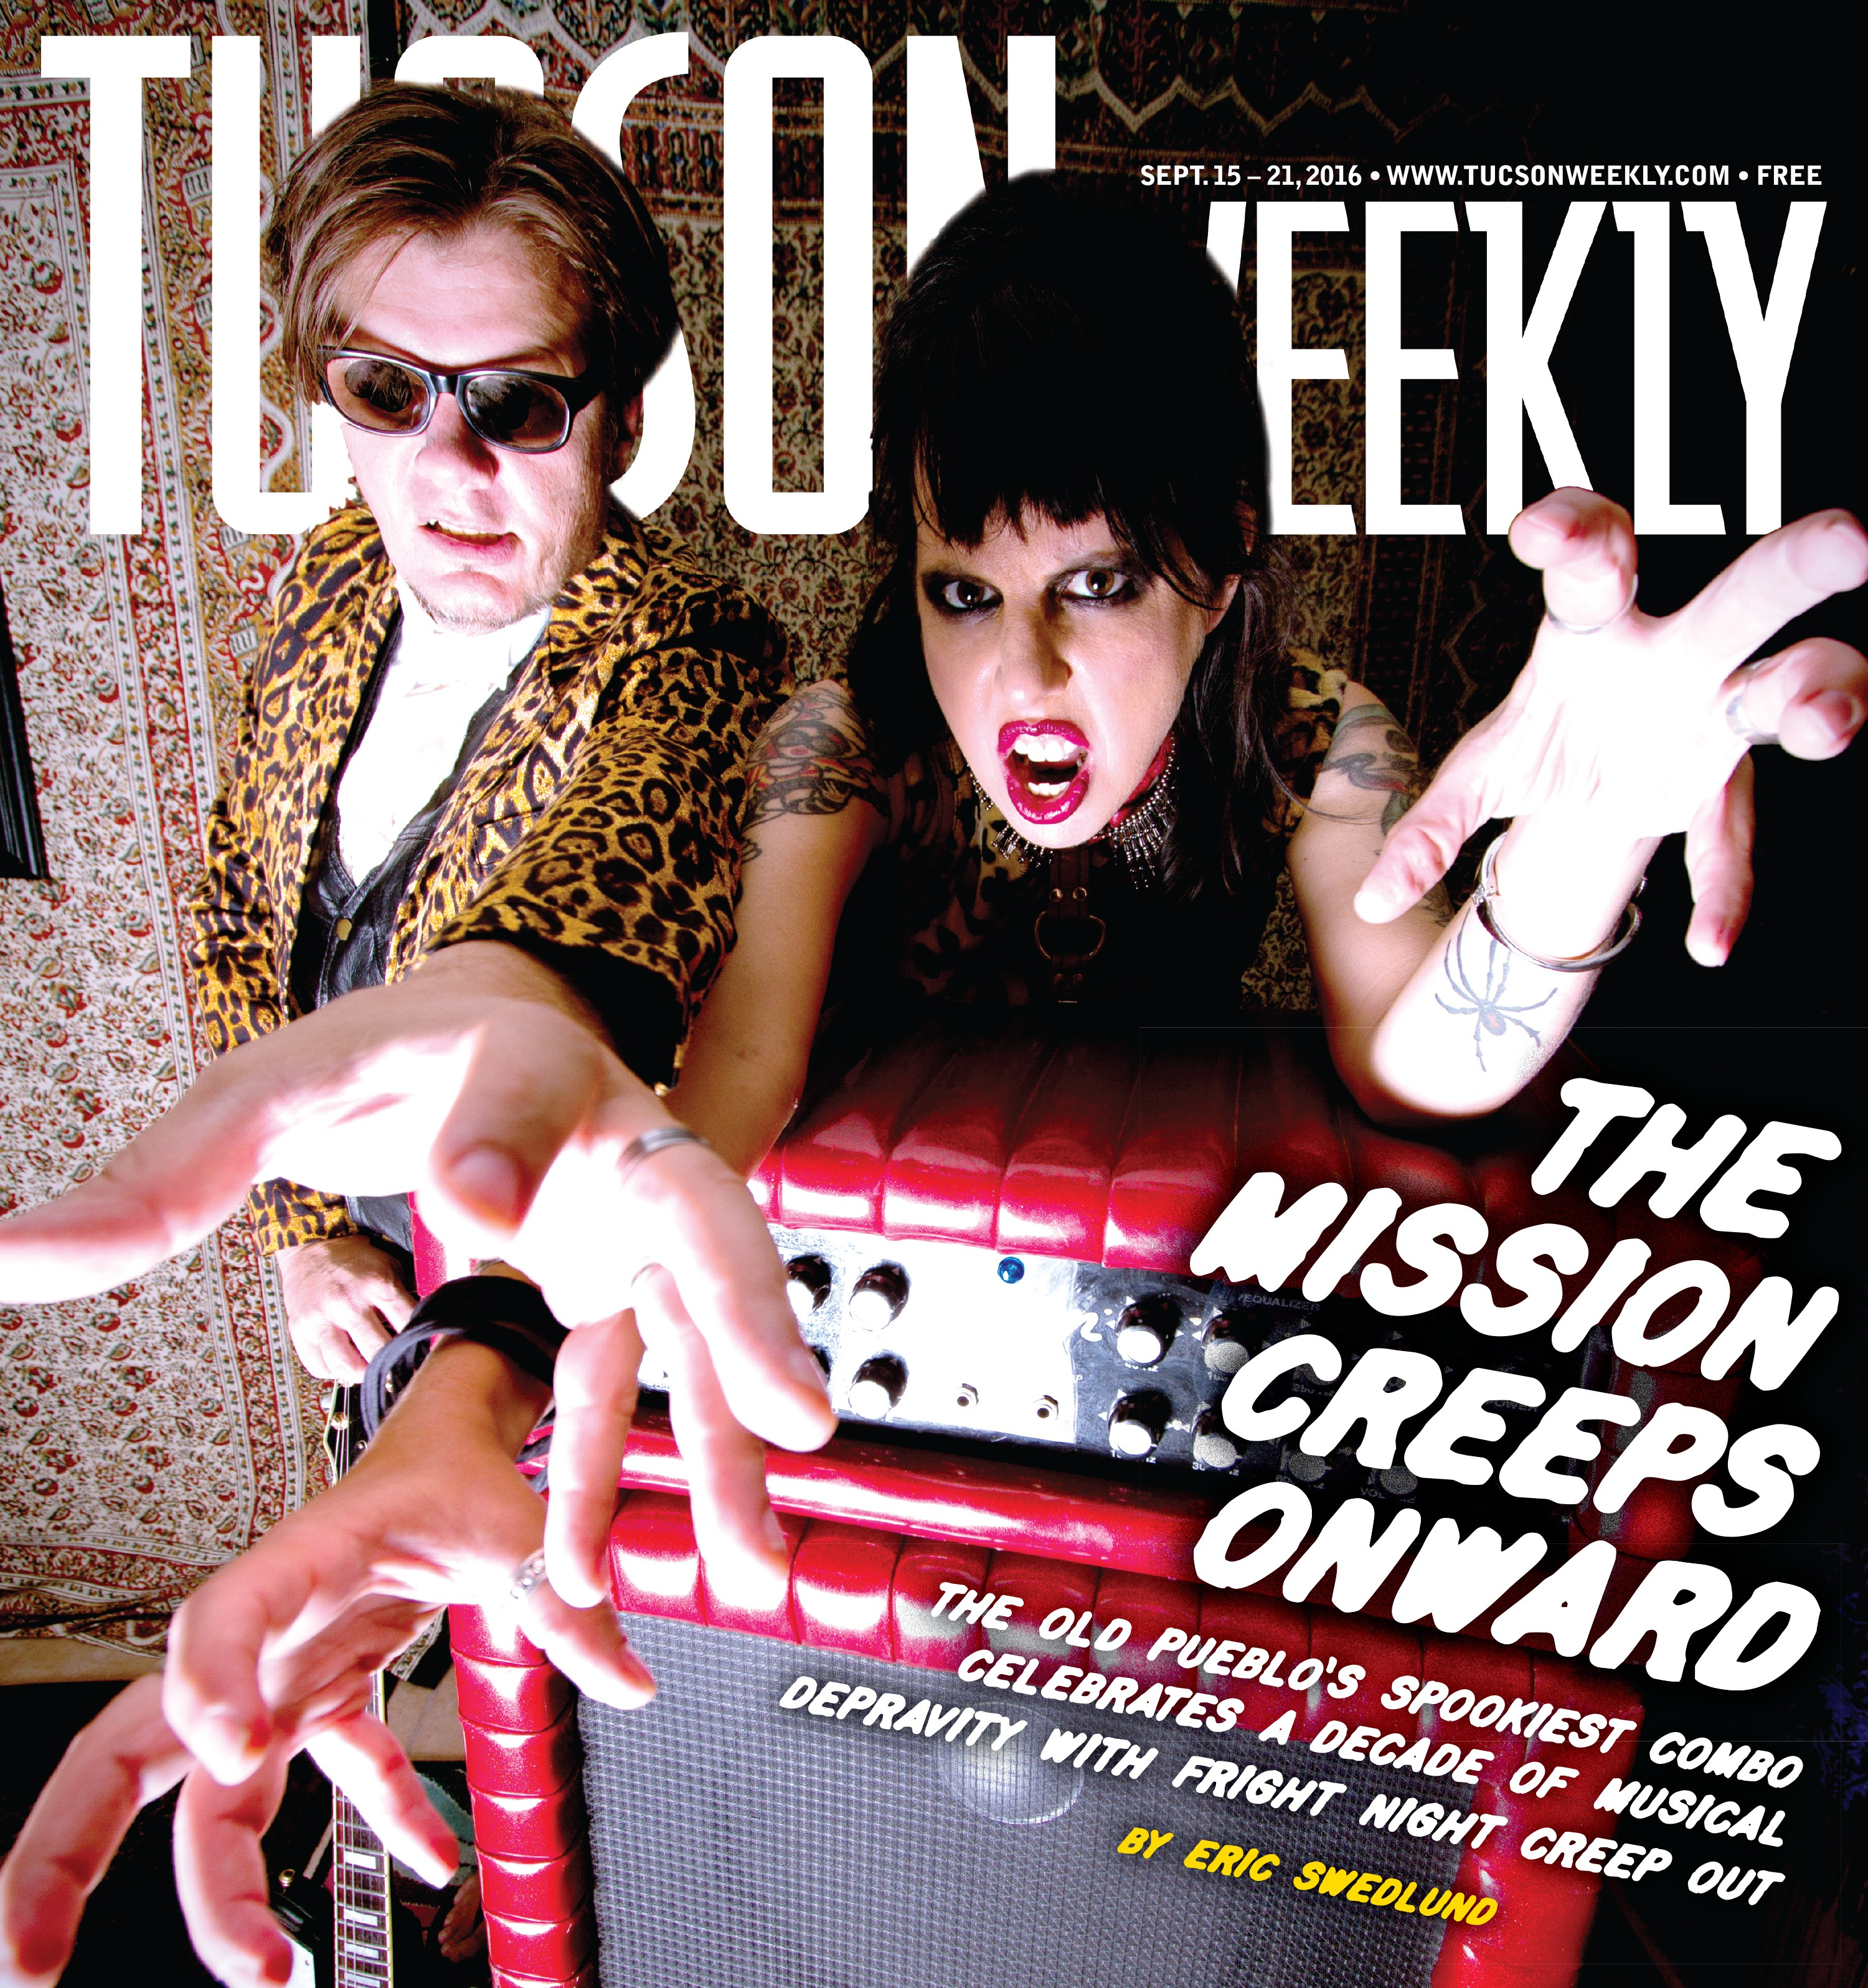 Mission Creeps Halloween 2020 The Mission Creeps Onward | Music Feature | Tucson Weekly